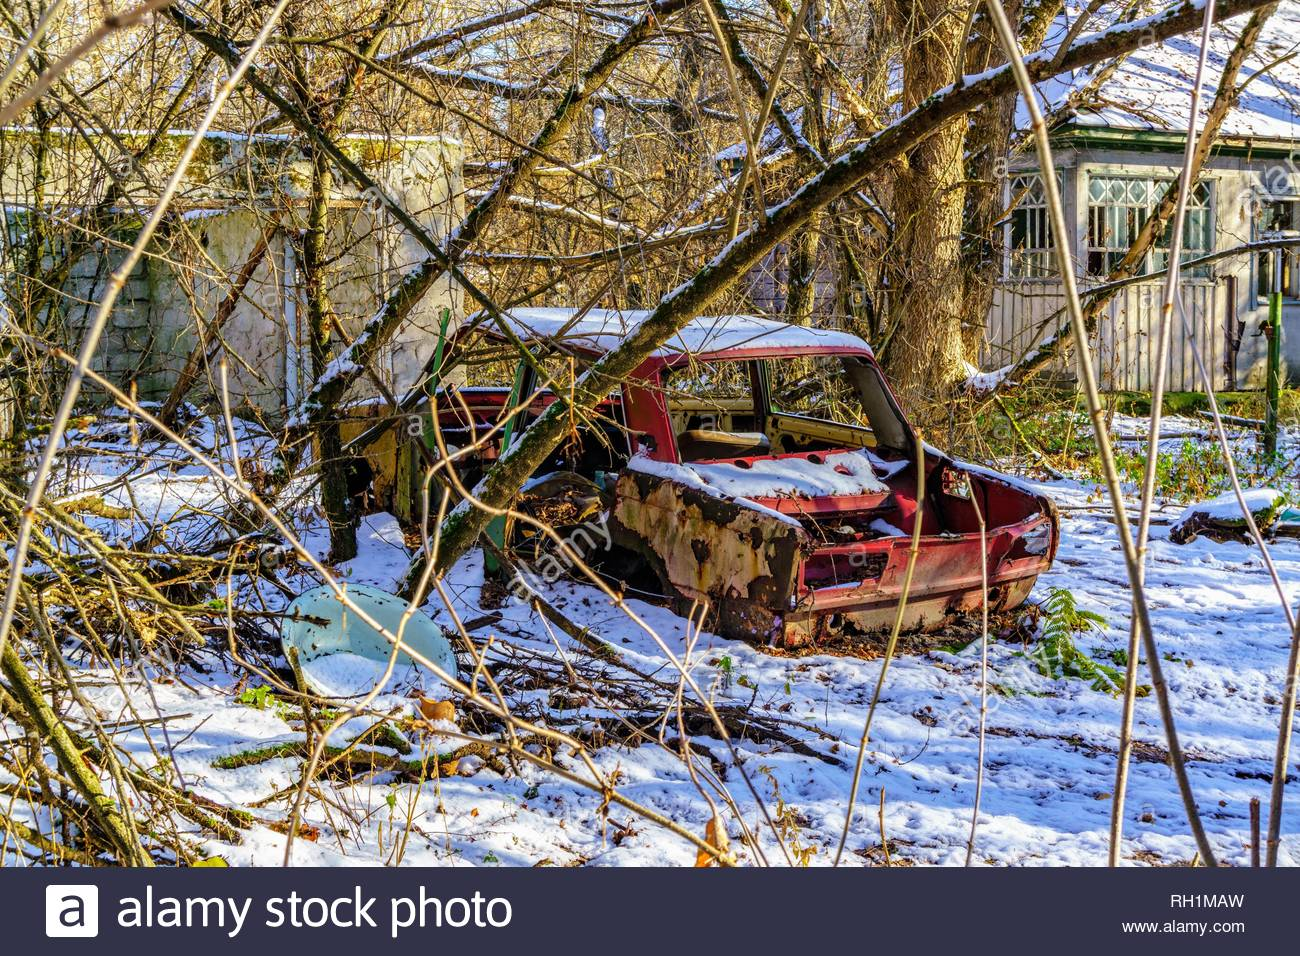 Abandoned red car surrounded by snow in Chernobyl Exclusion zone in Ukraine - Stock Image